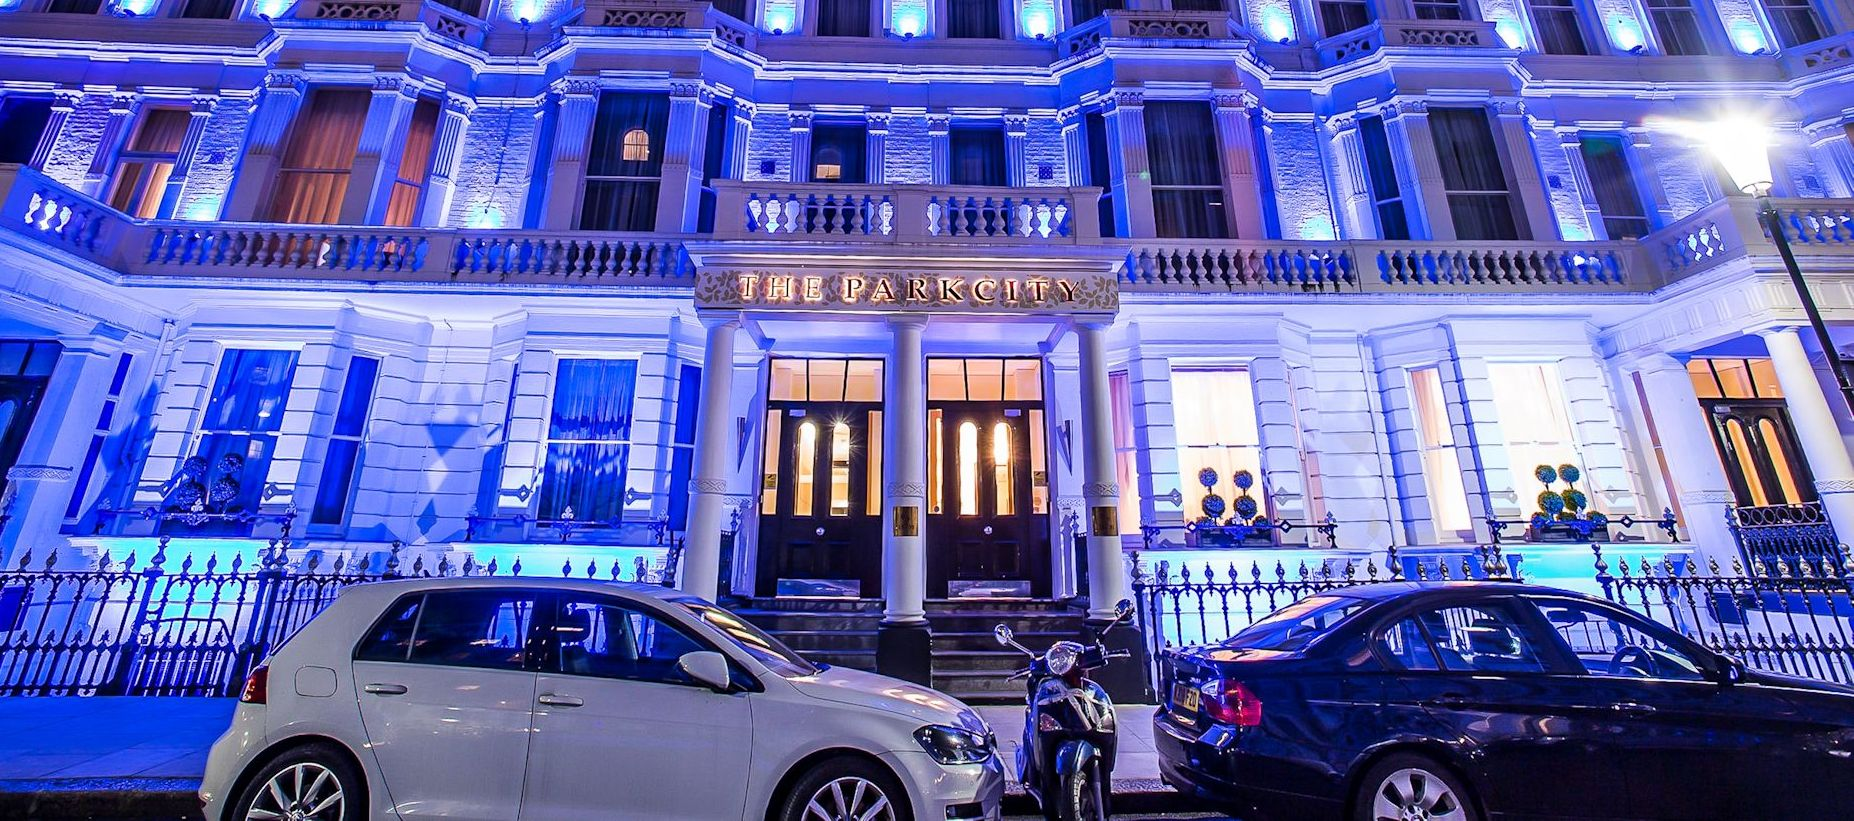 The Park Grand Hotel London